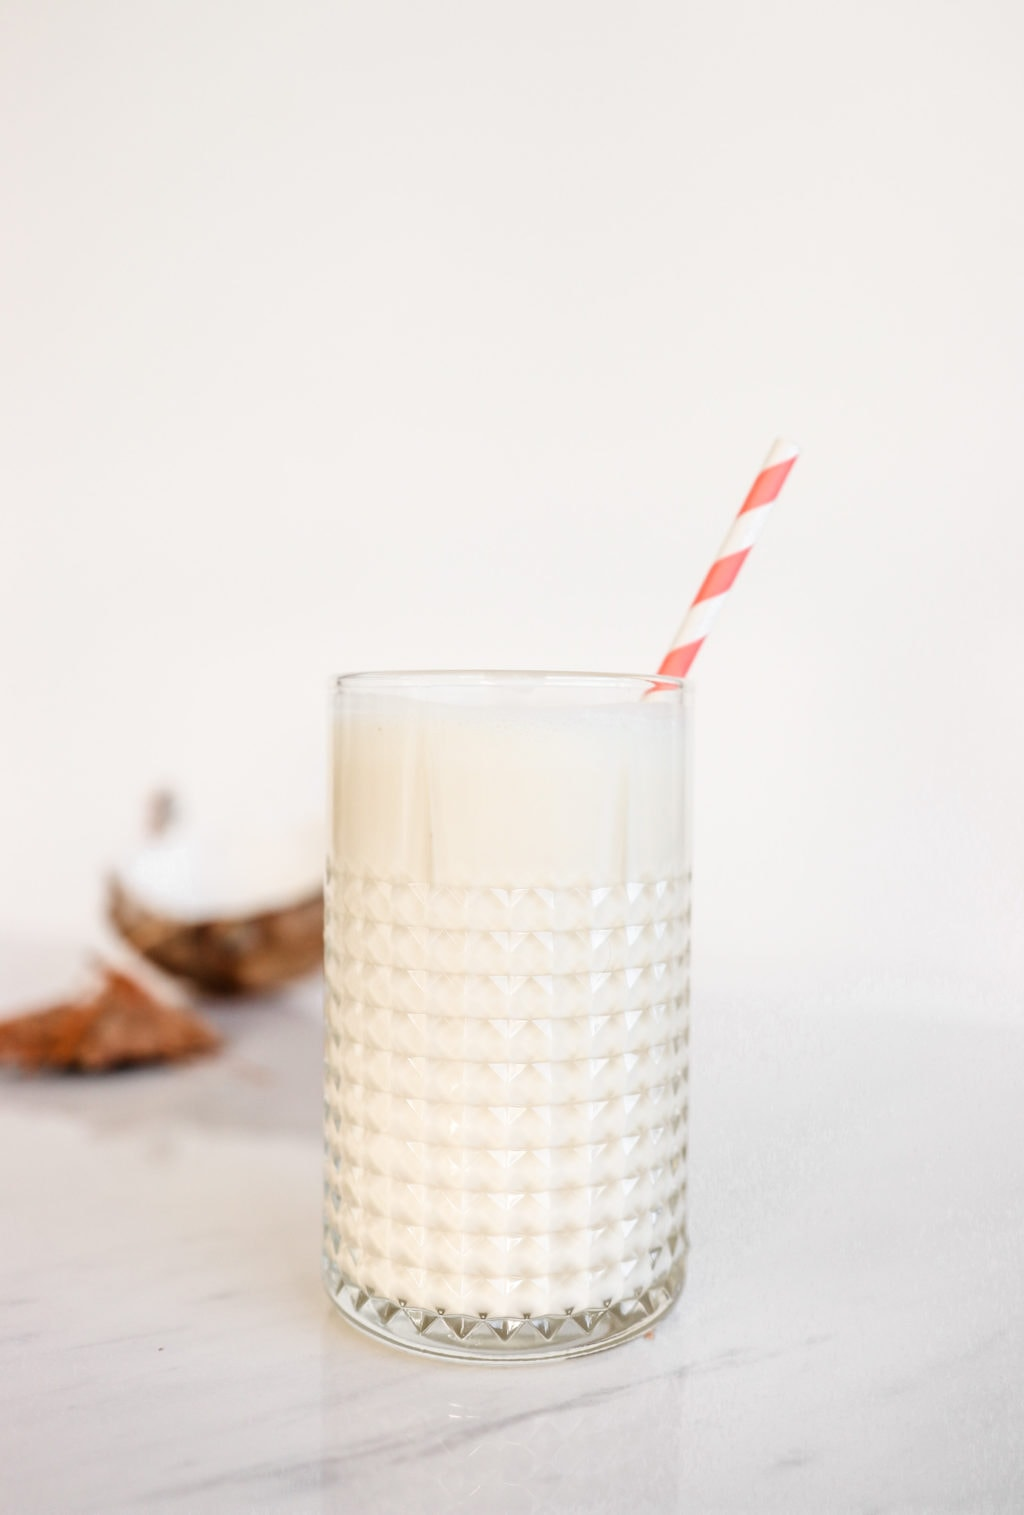 A pina colada smoothie in a glass with a pink and white striped straw on a white surface with a broken coconut beside it. Ingredients include coconut milk, pineapple, banana, and plain Greek yogurt